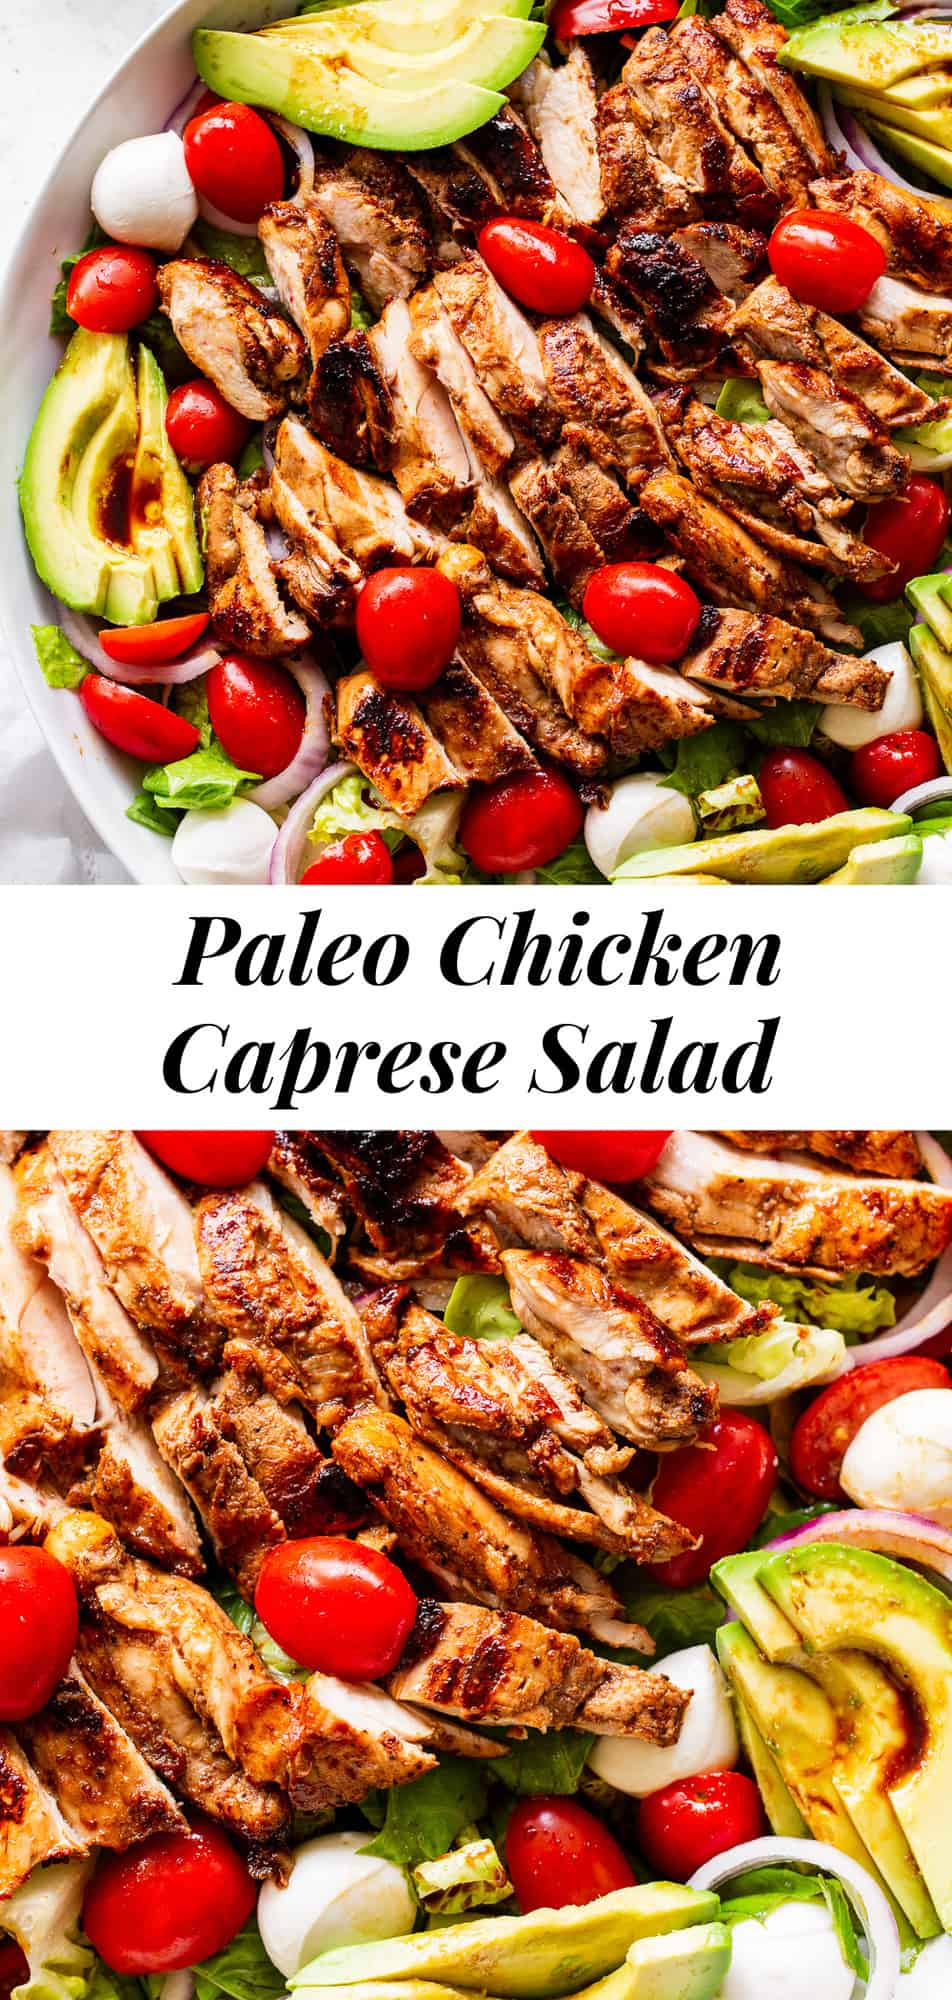 This grilled chicken caprese salad has all the flavors you're craving! With a perfect balsamic marinade that doubles as the dressing, tender juicy chicken thighs, greens, basil, cherry tomatoes and avocado, it's the perfect salad for your BBQ or picnic! Gluten free, dairy free option, Paleo and Whole30 options. #paleo #whole30 #chicken #grilledchicken #cleaneating #caprese